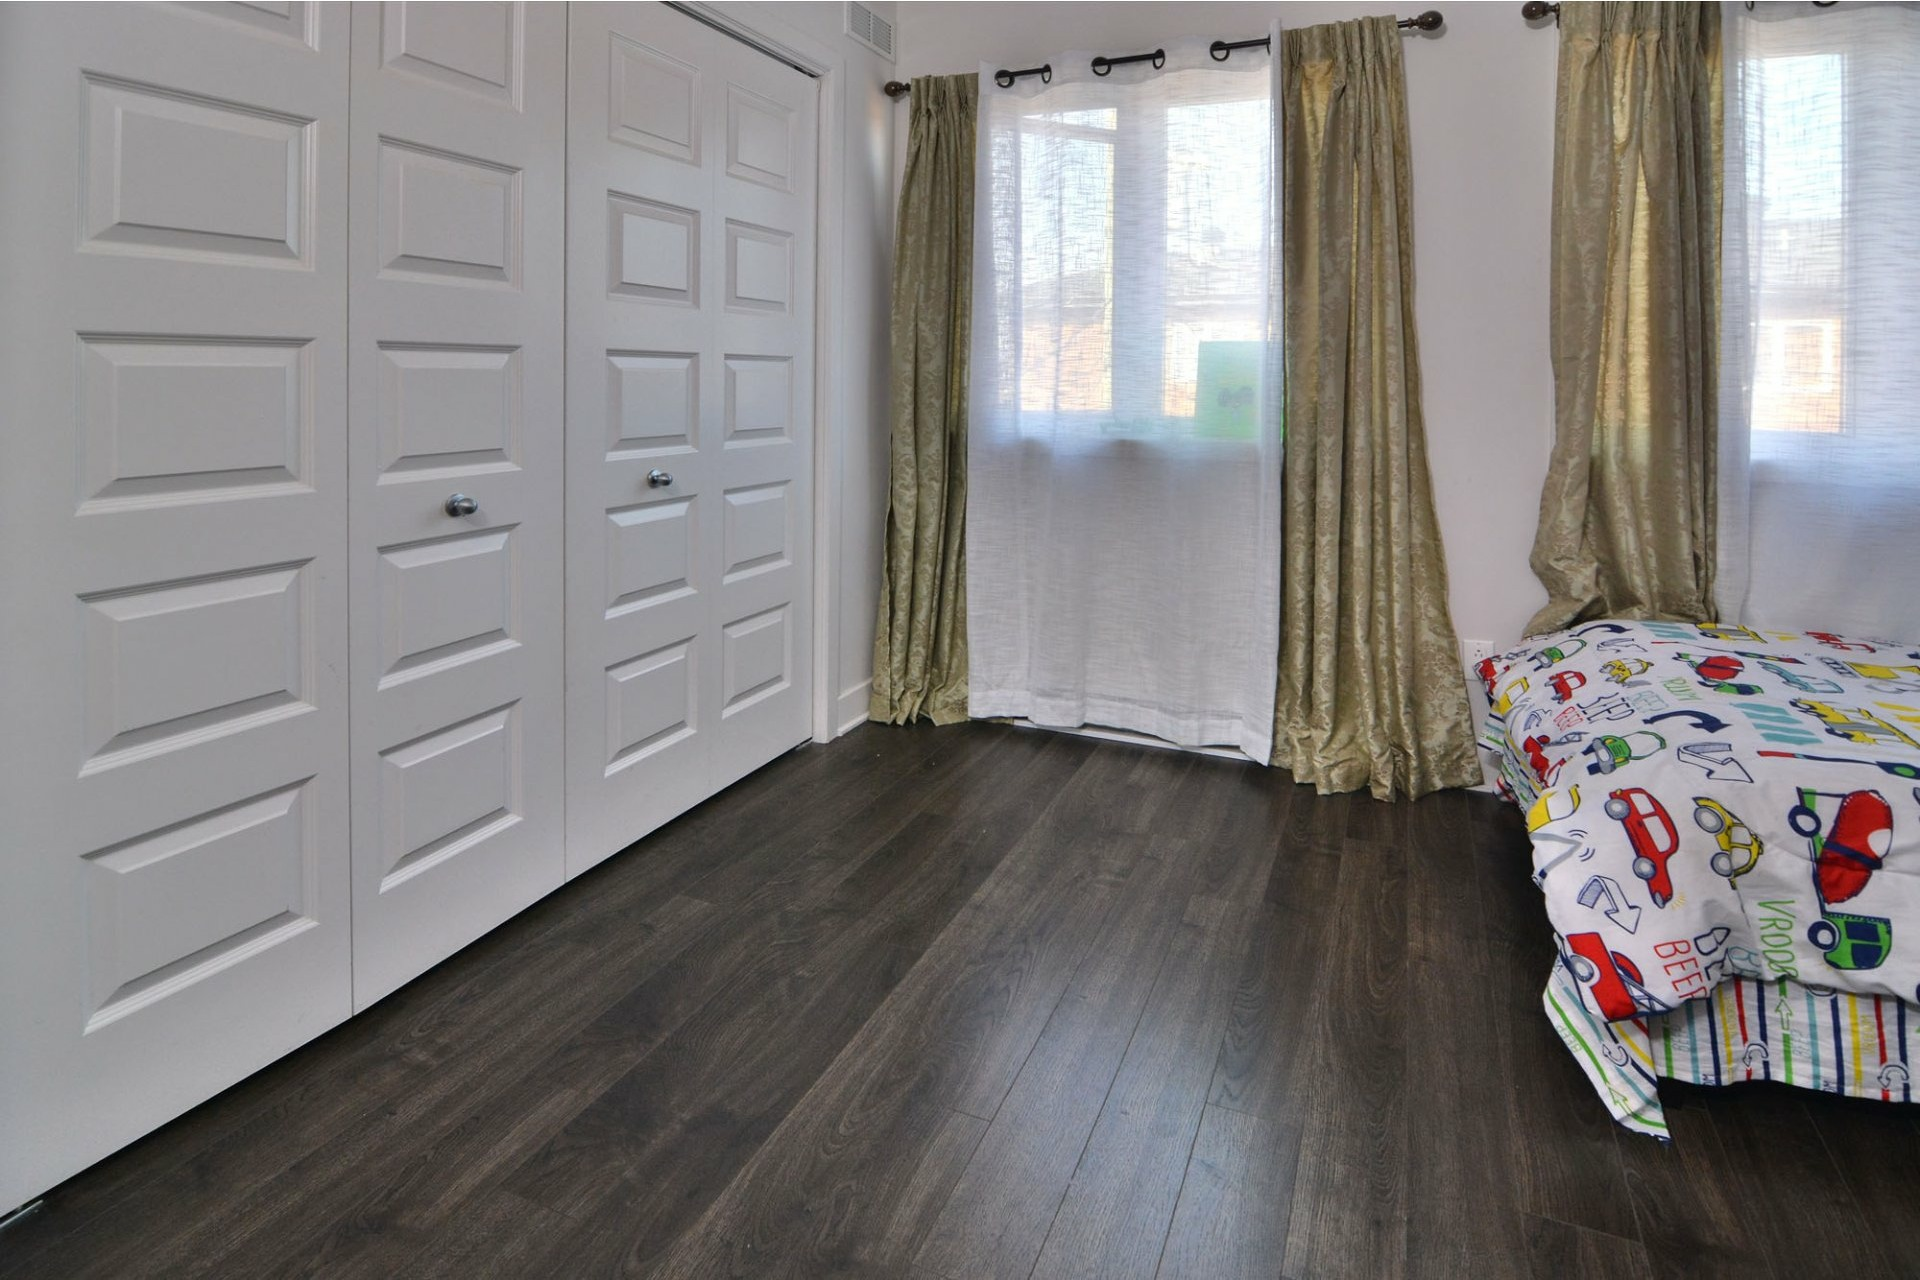 image 16 - House For sale Vaudreuil-Dorion - 7 rooms